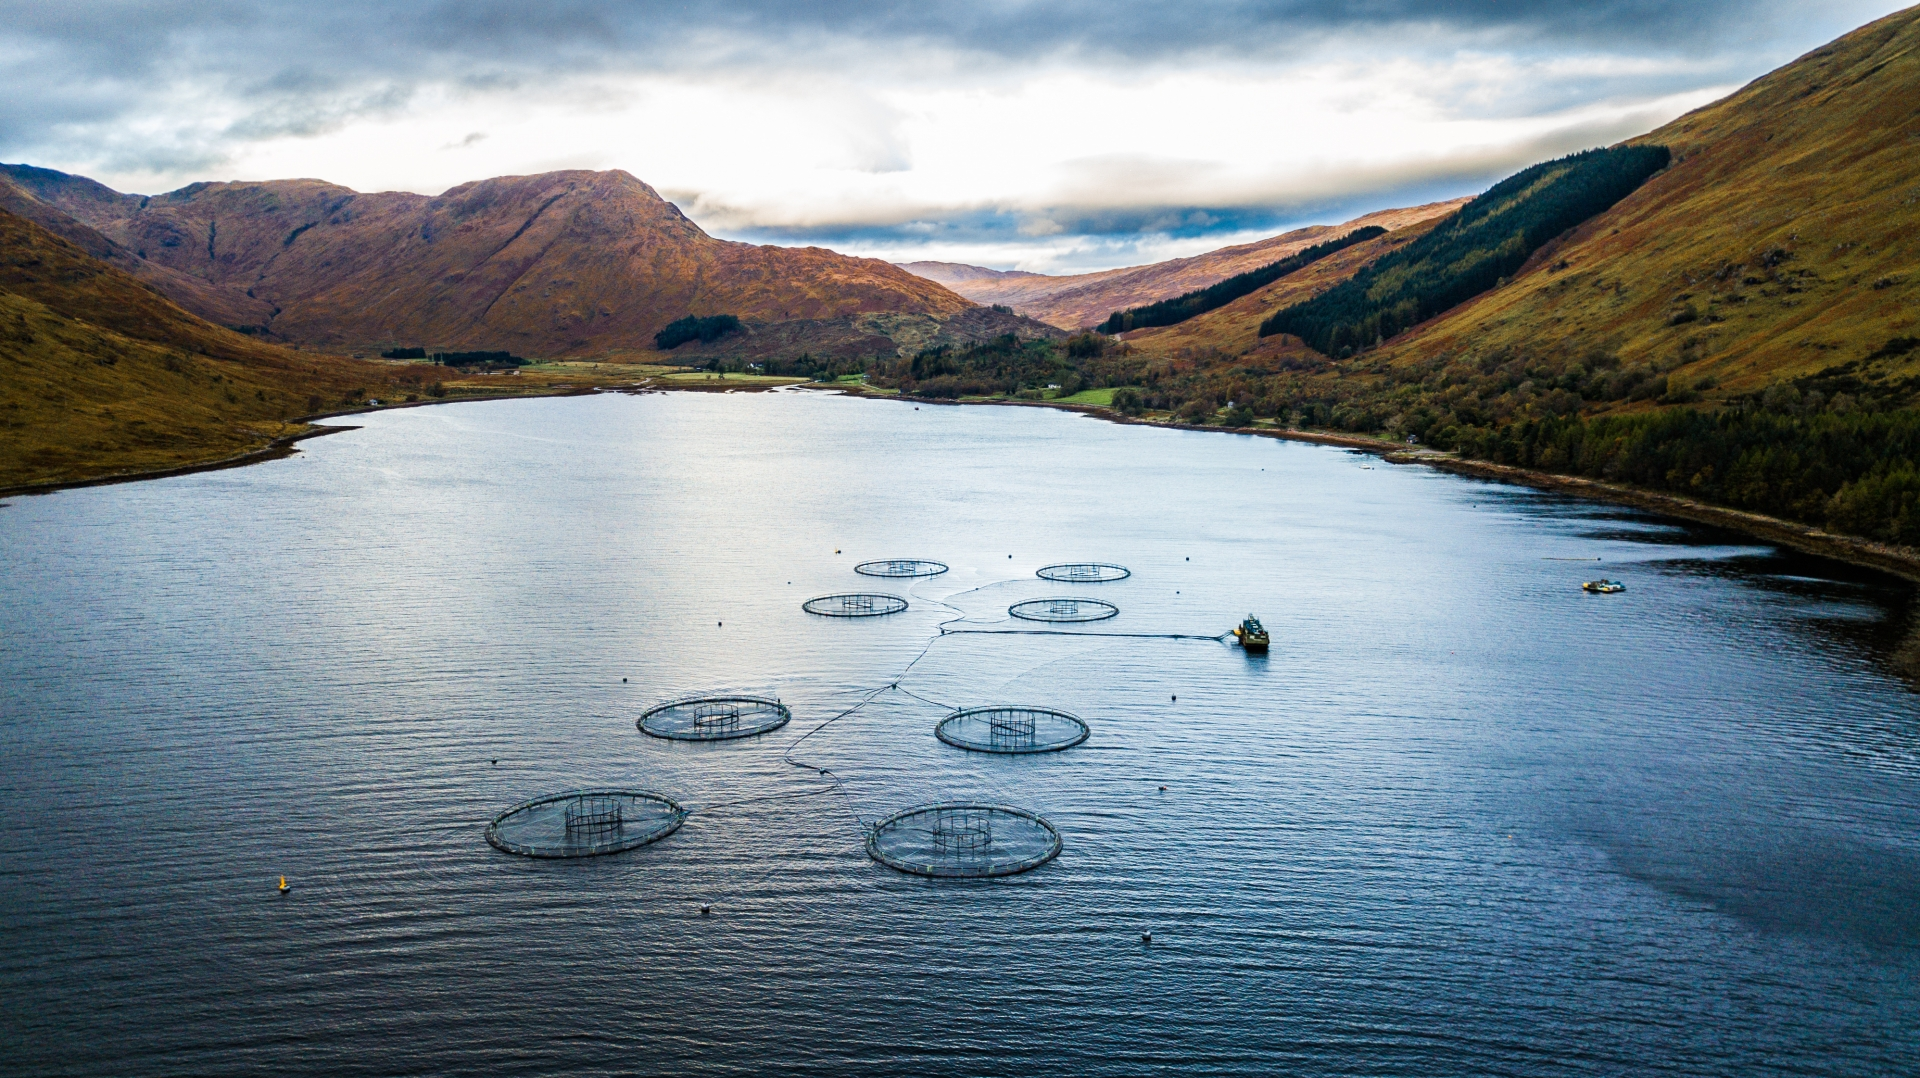 Farmed Scottish salmon – can we have our fish and eat it?